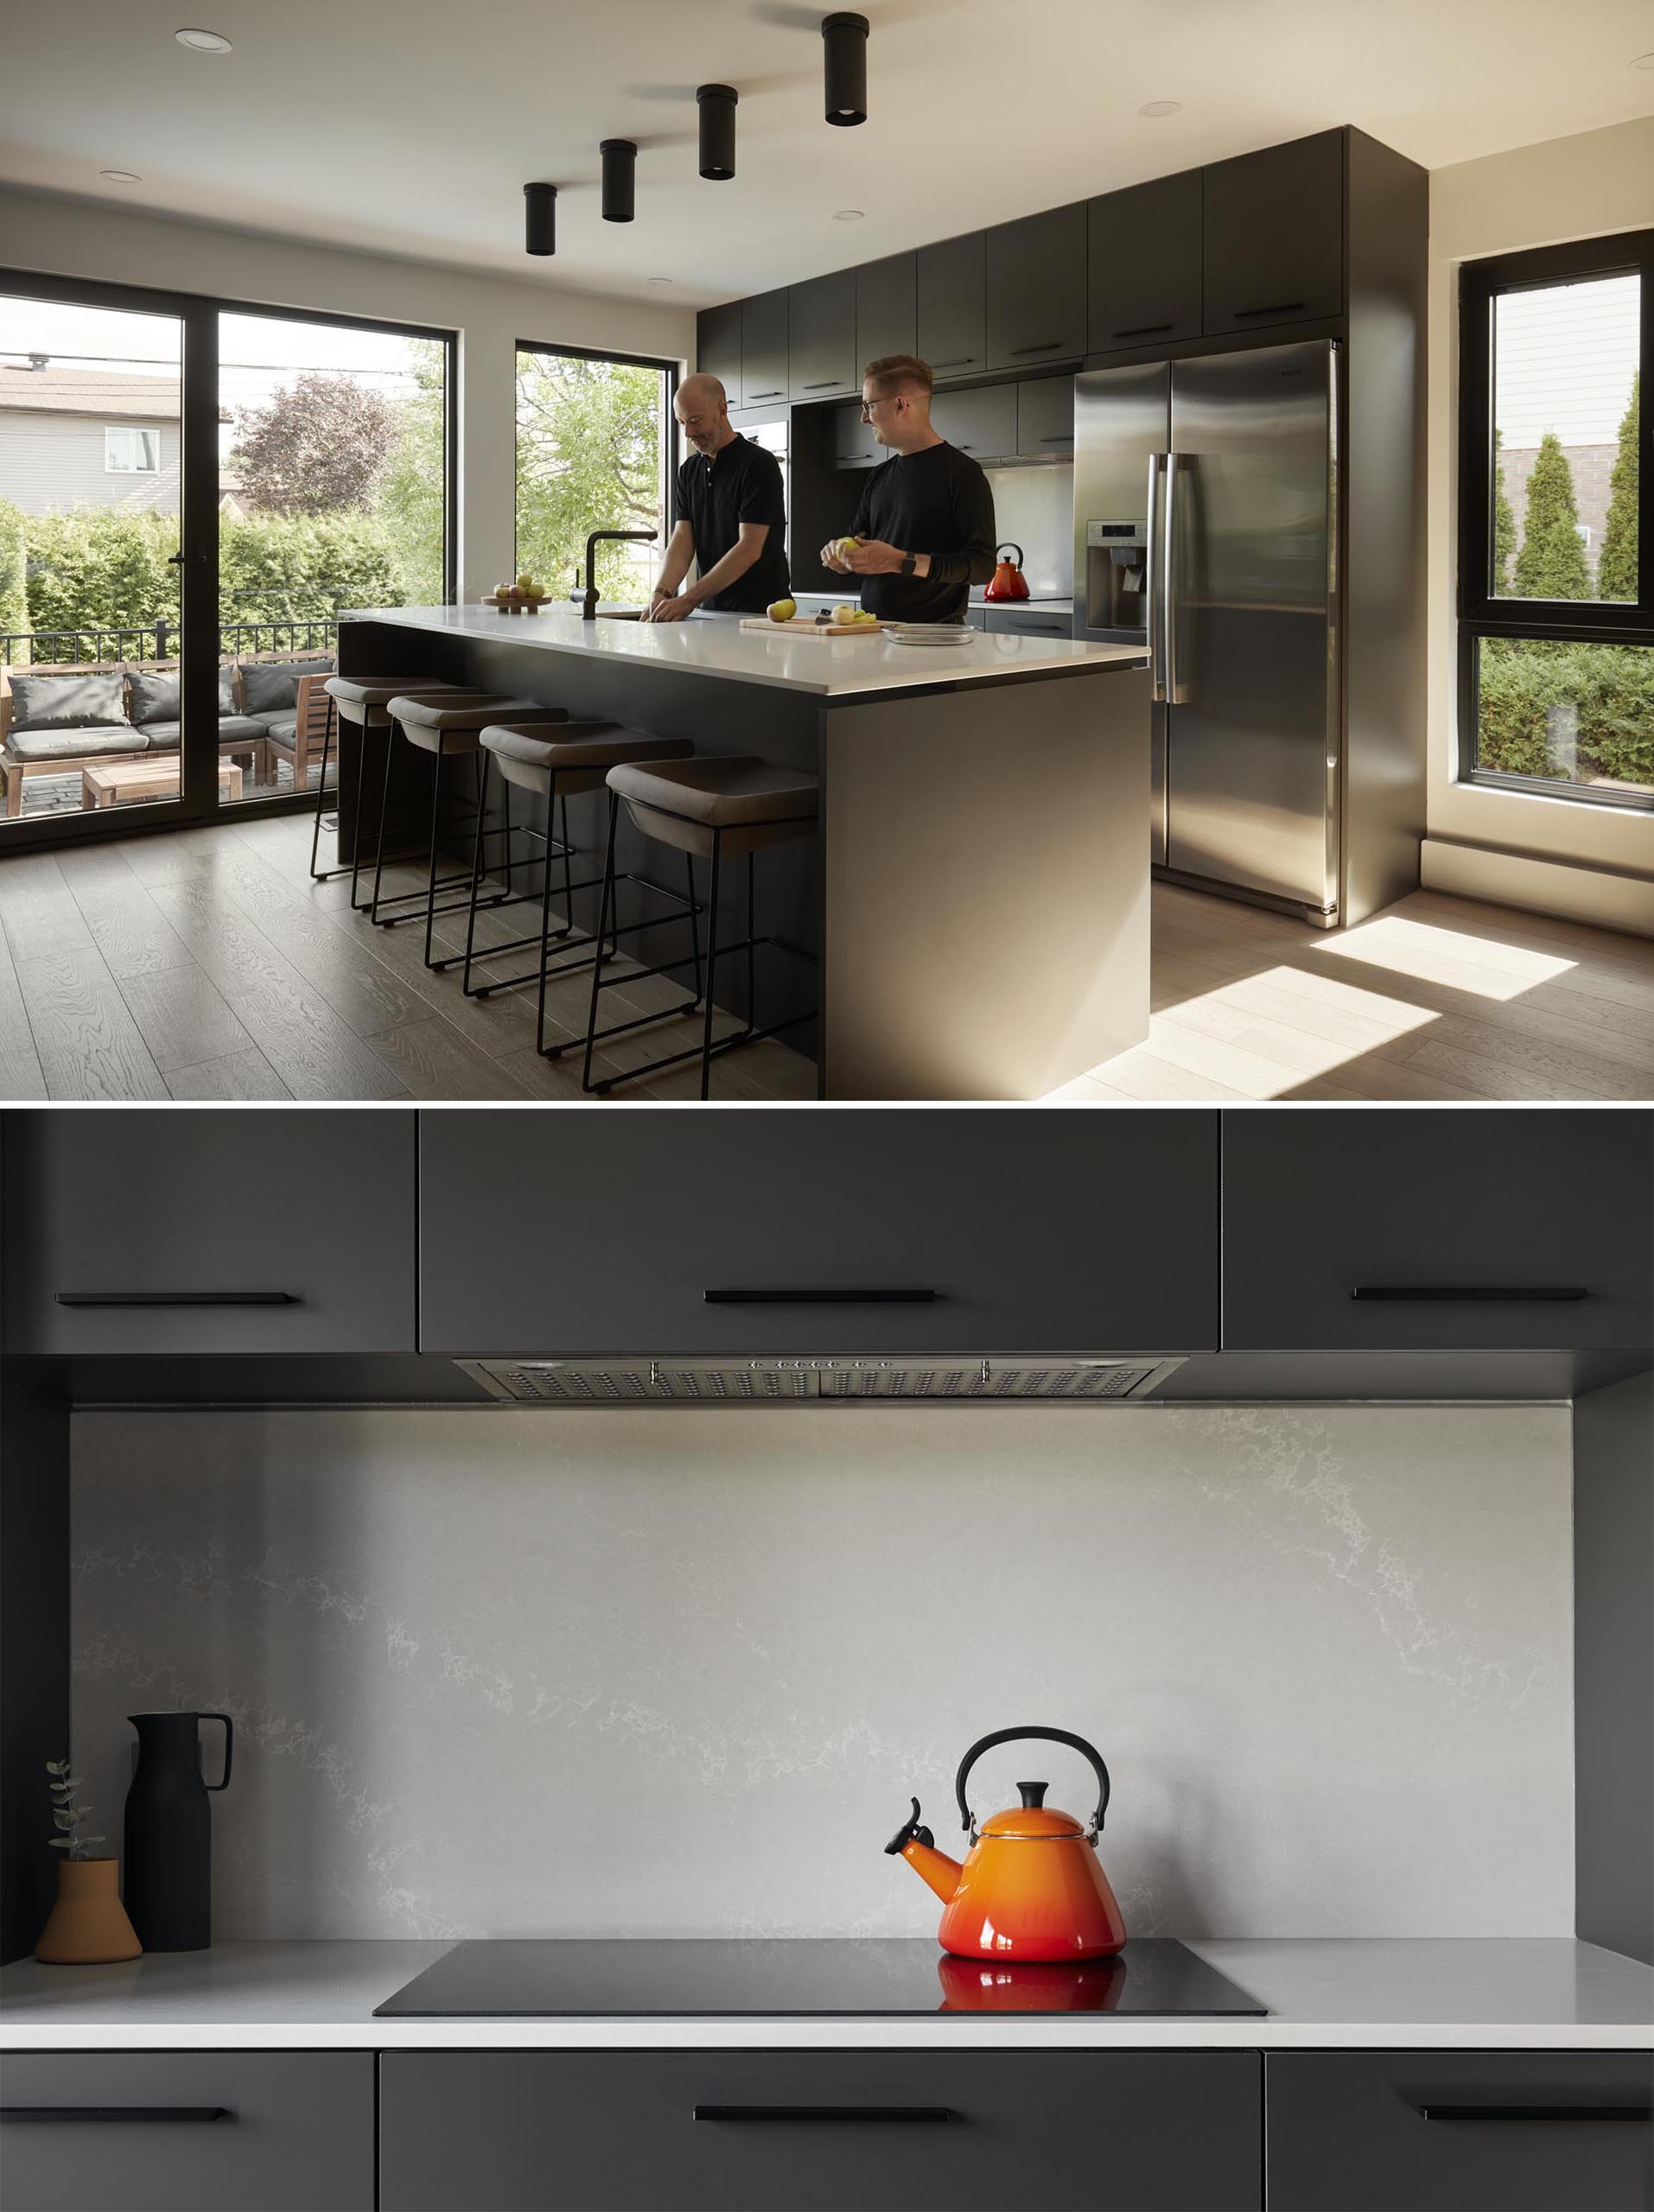 In this modern kitchen, two large blocks of integrated built-in cabinets face each other, with an island positioned between them.